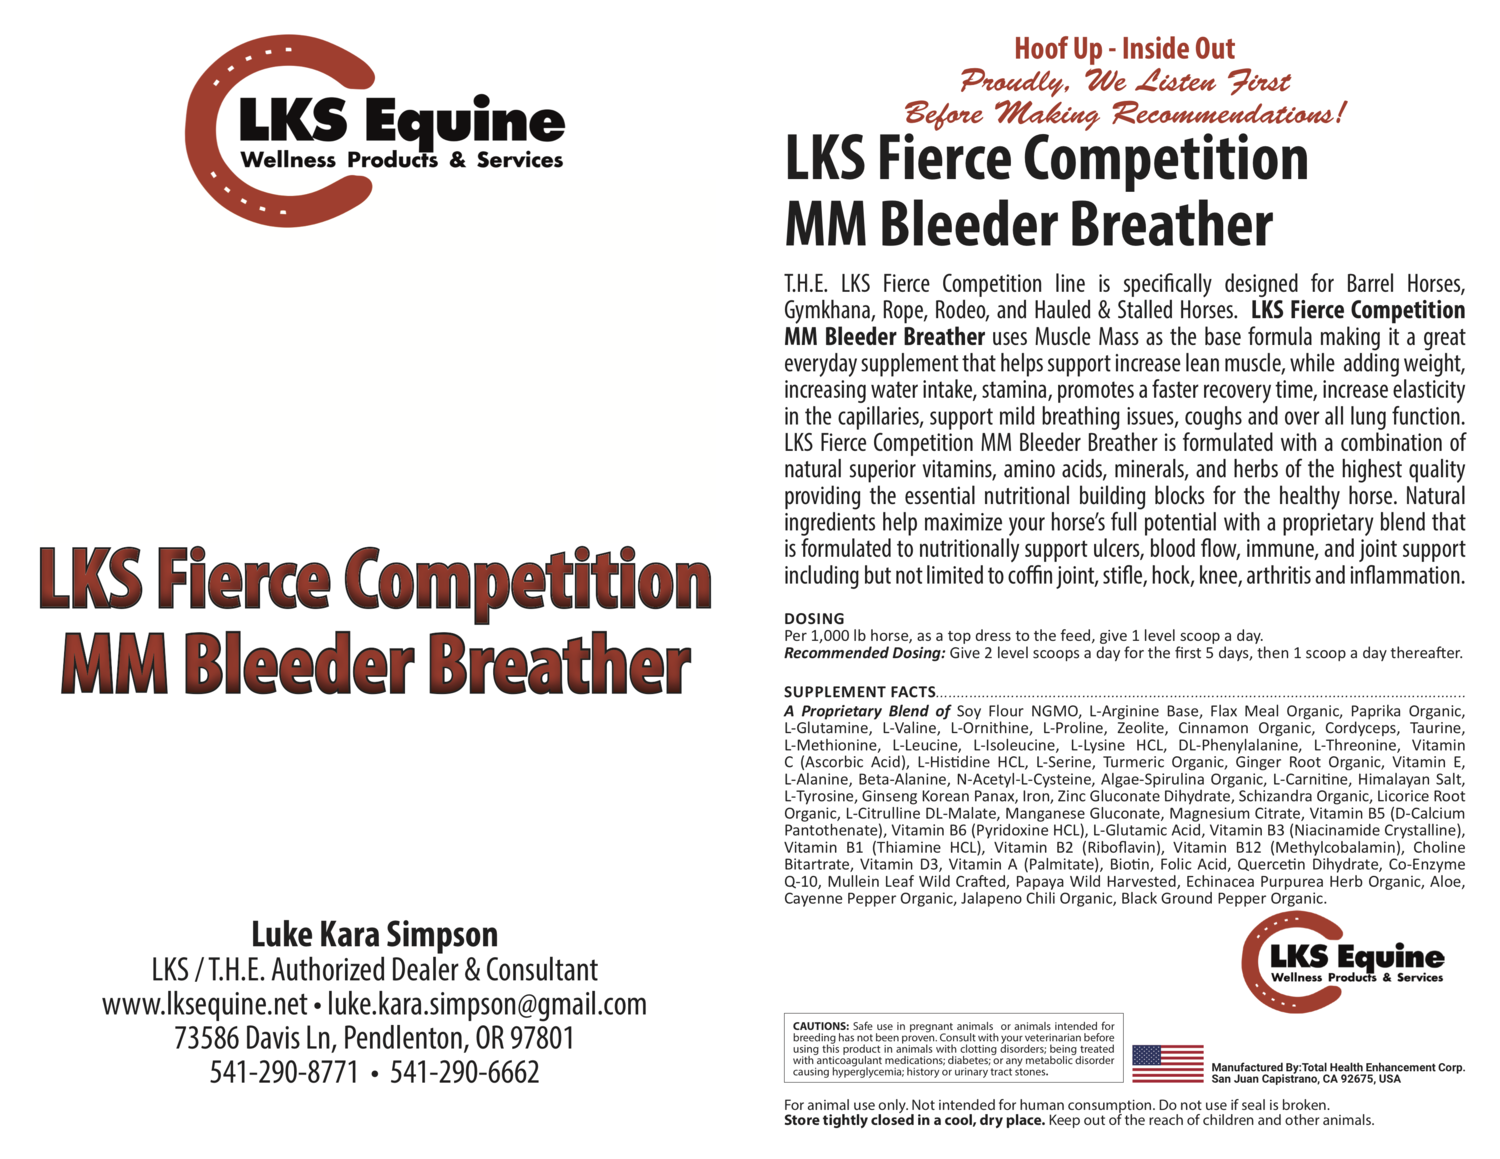 LKS Fierce Competition MM Bleeder Breather - Muscle Mass Base